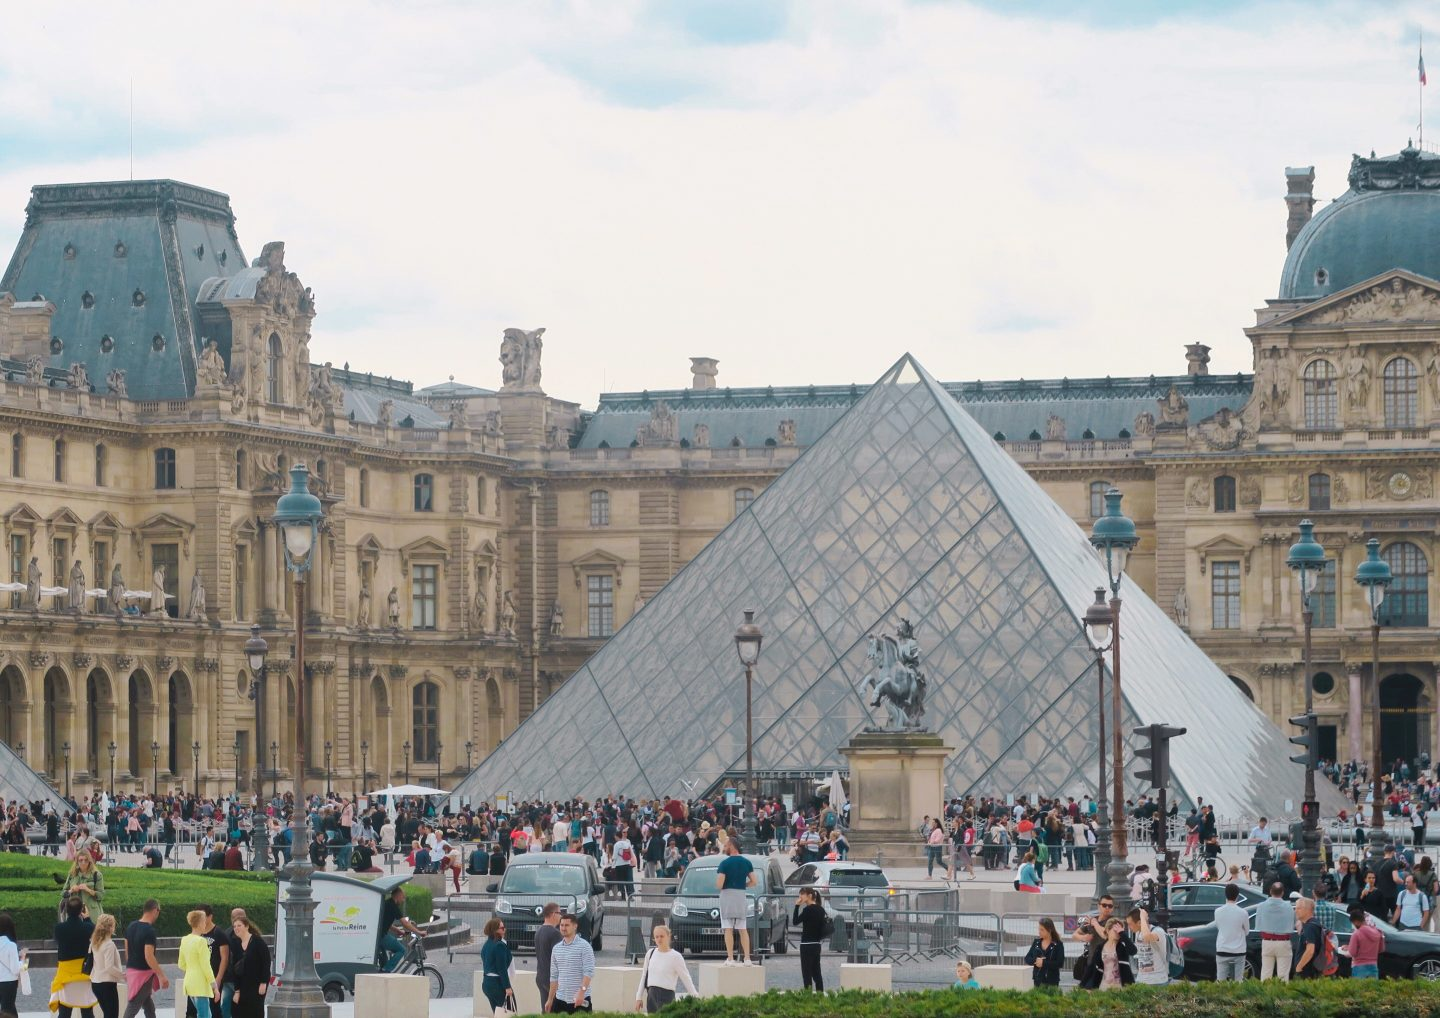 The pyramid at the Louvre museum and gallery A row of Parisian houses on Monmarte in day trip to Paris on a budget on francescasophia.co.uk